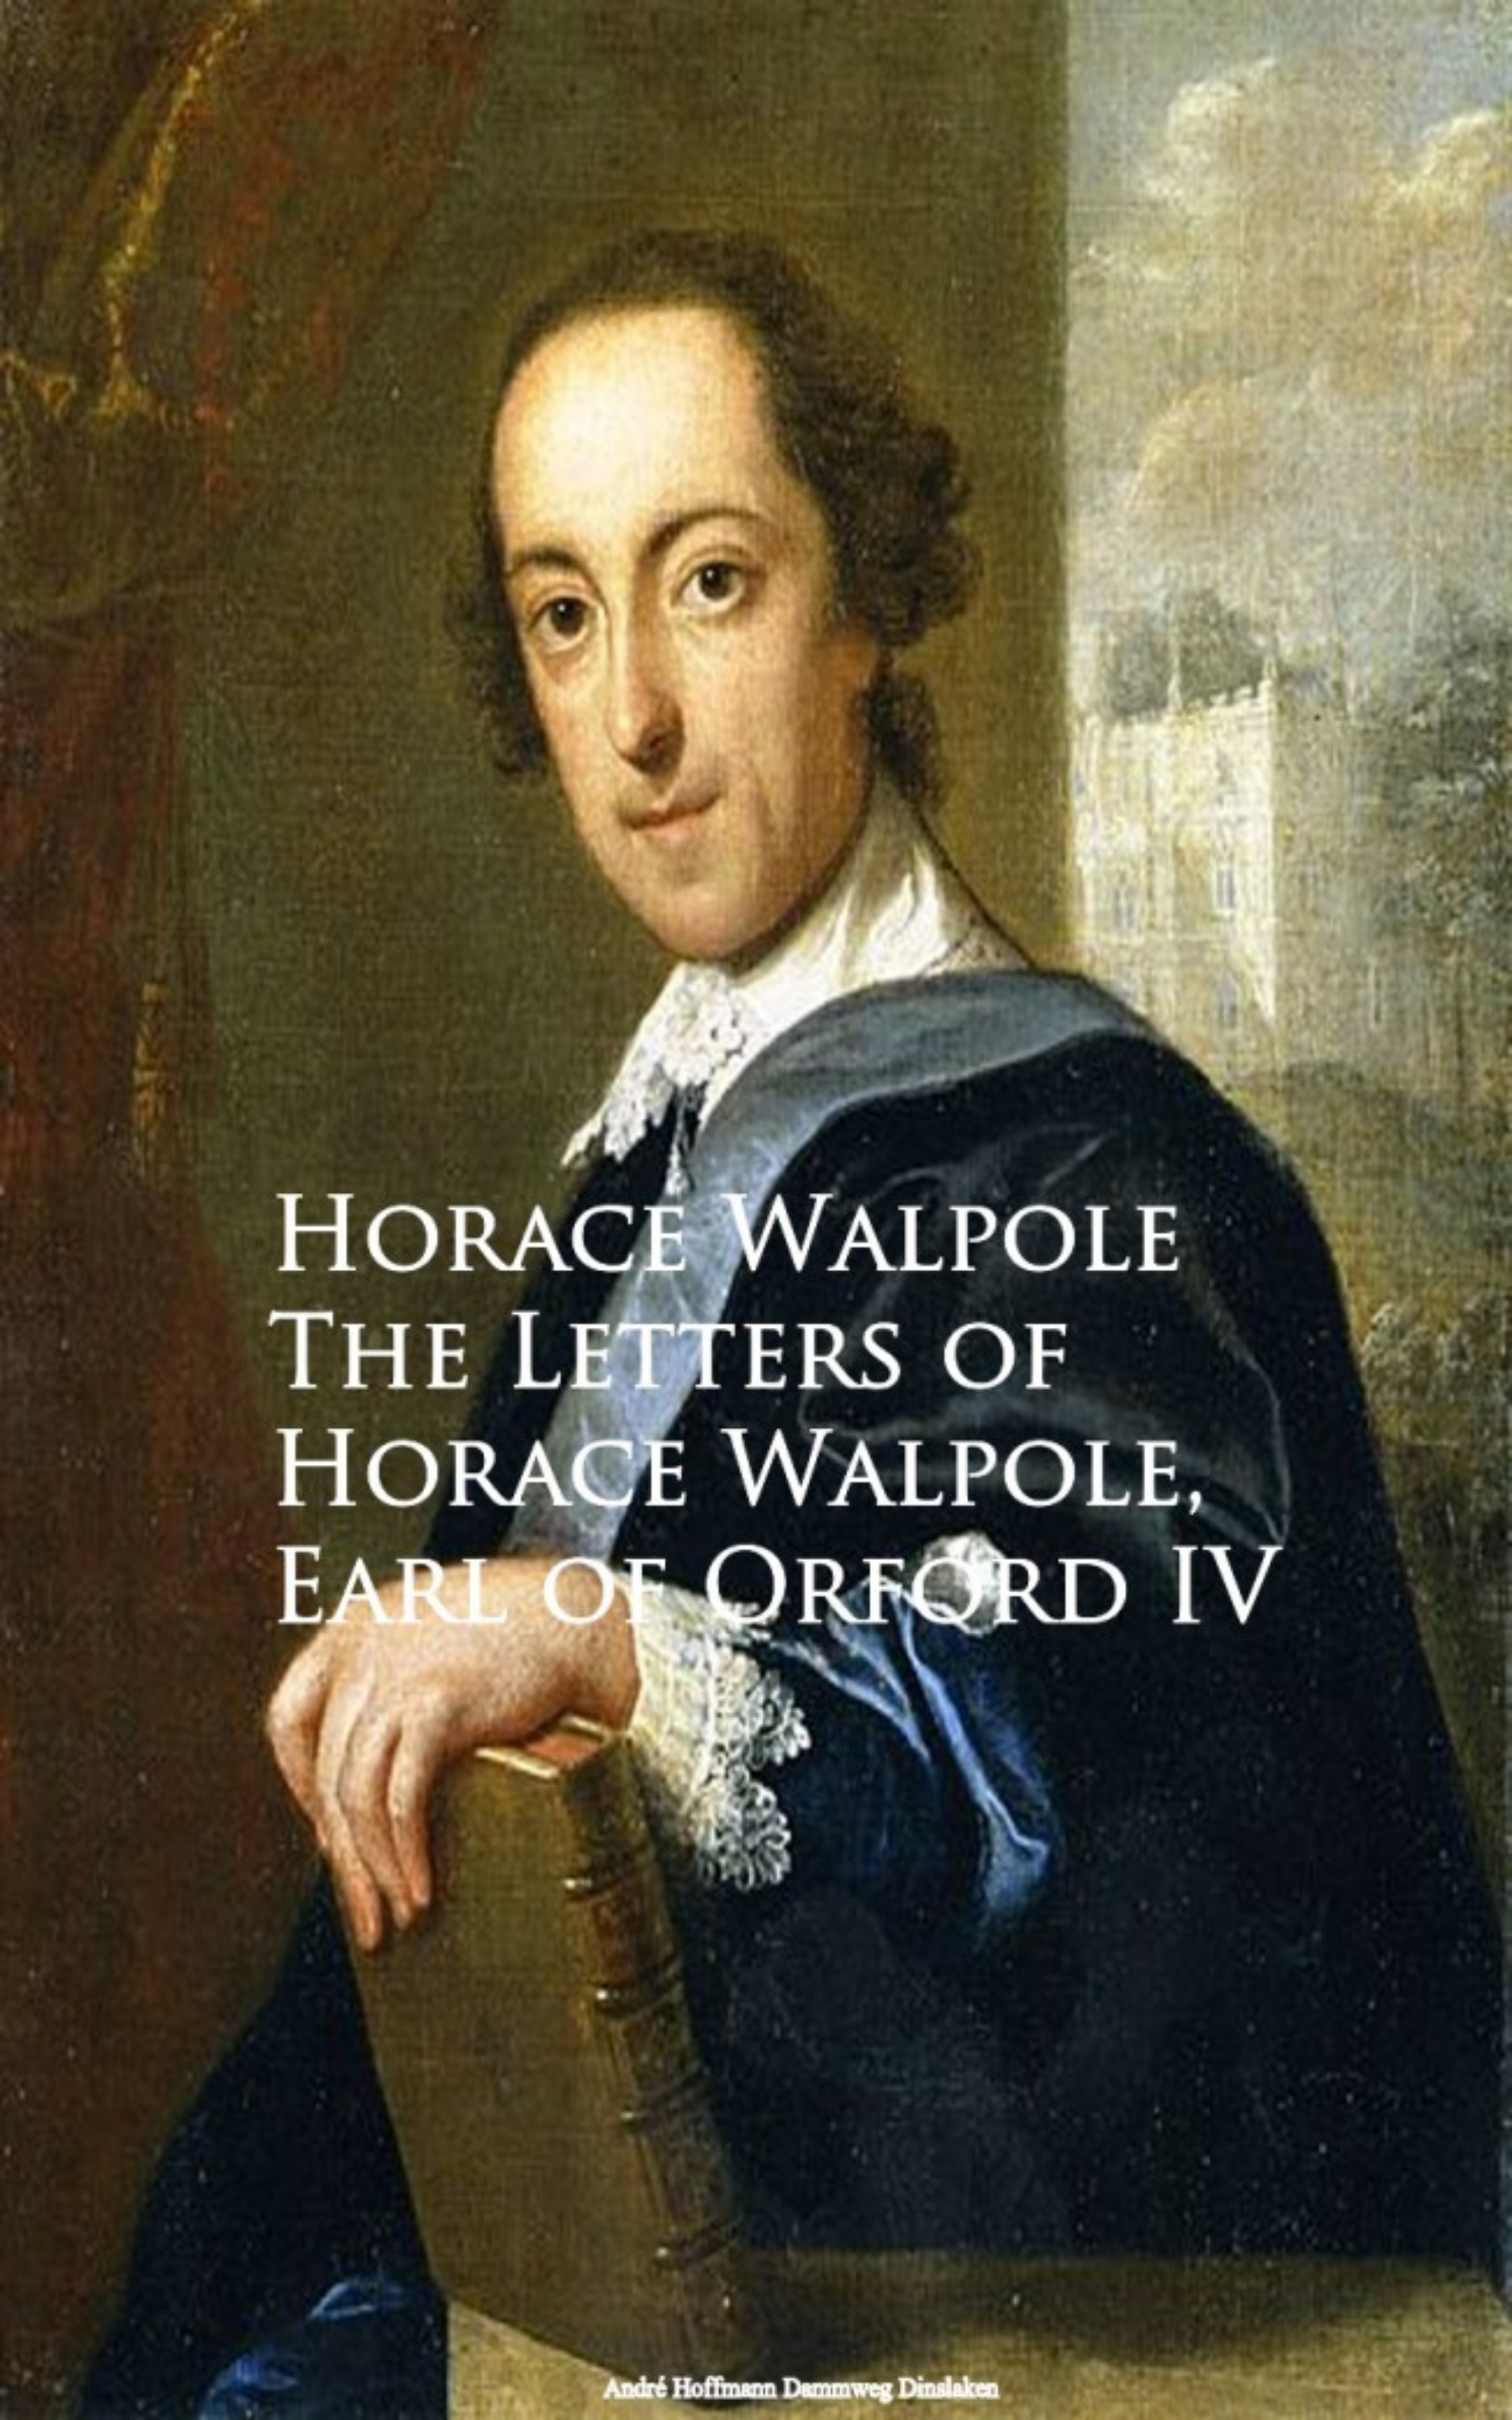 Horace Walpole The Letters of Horace Walpole, Earl of Orford IV the odes of horace